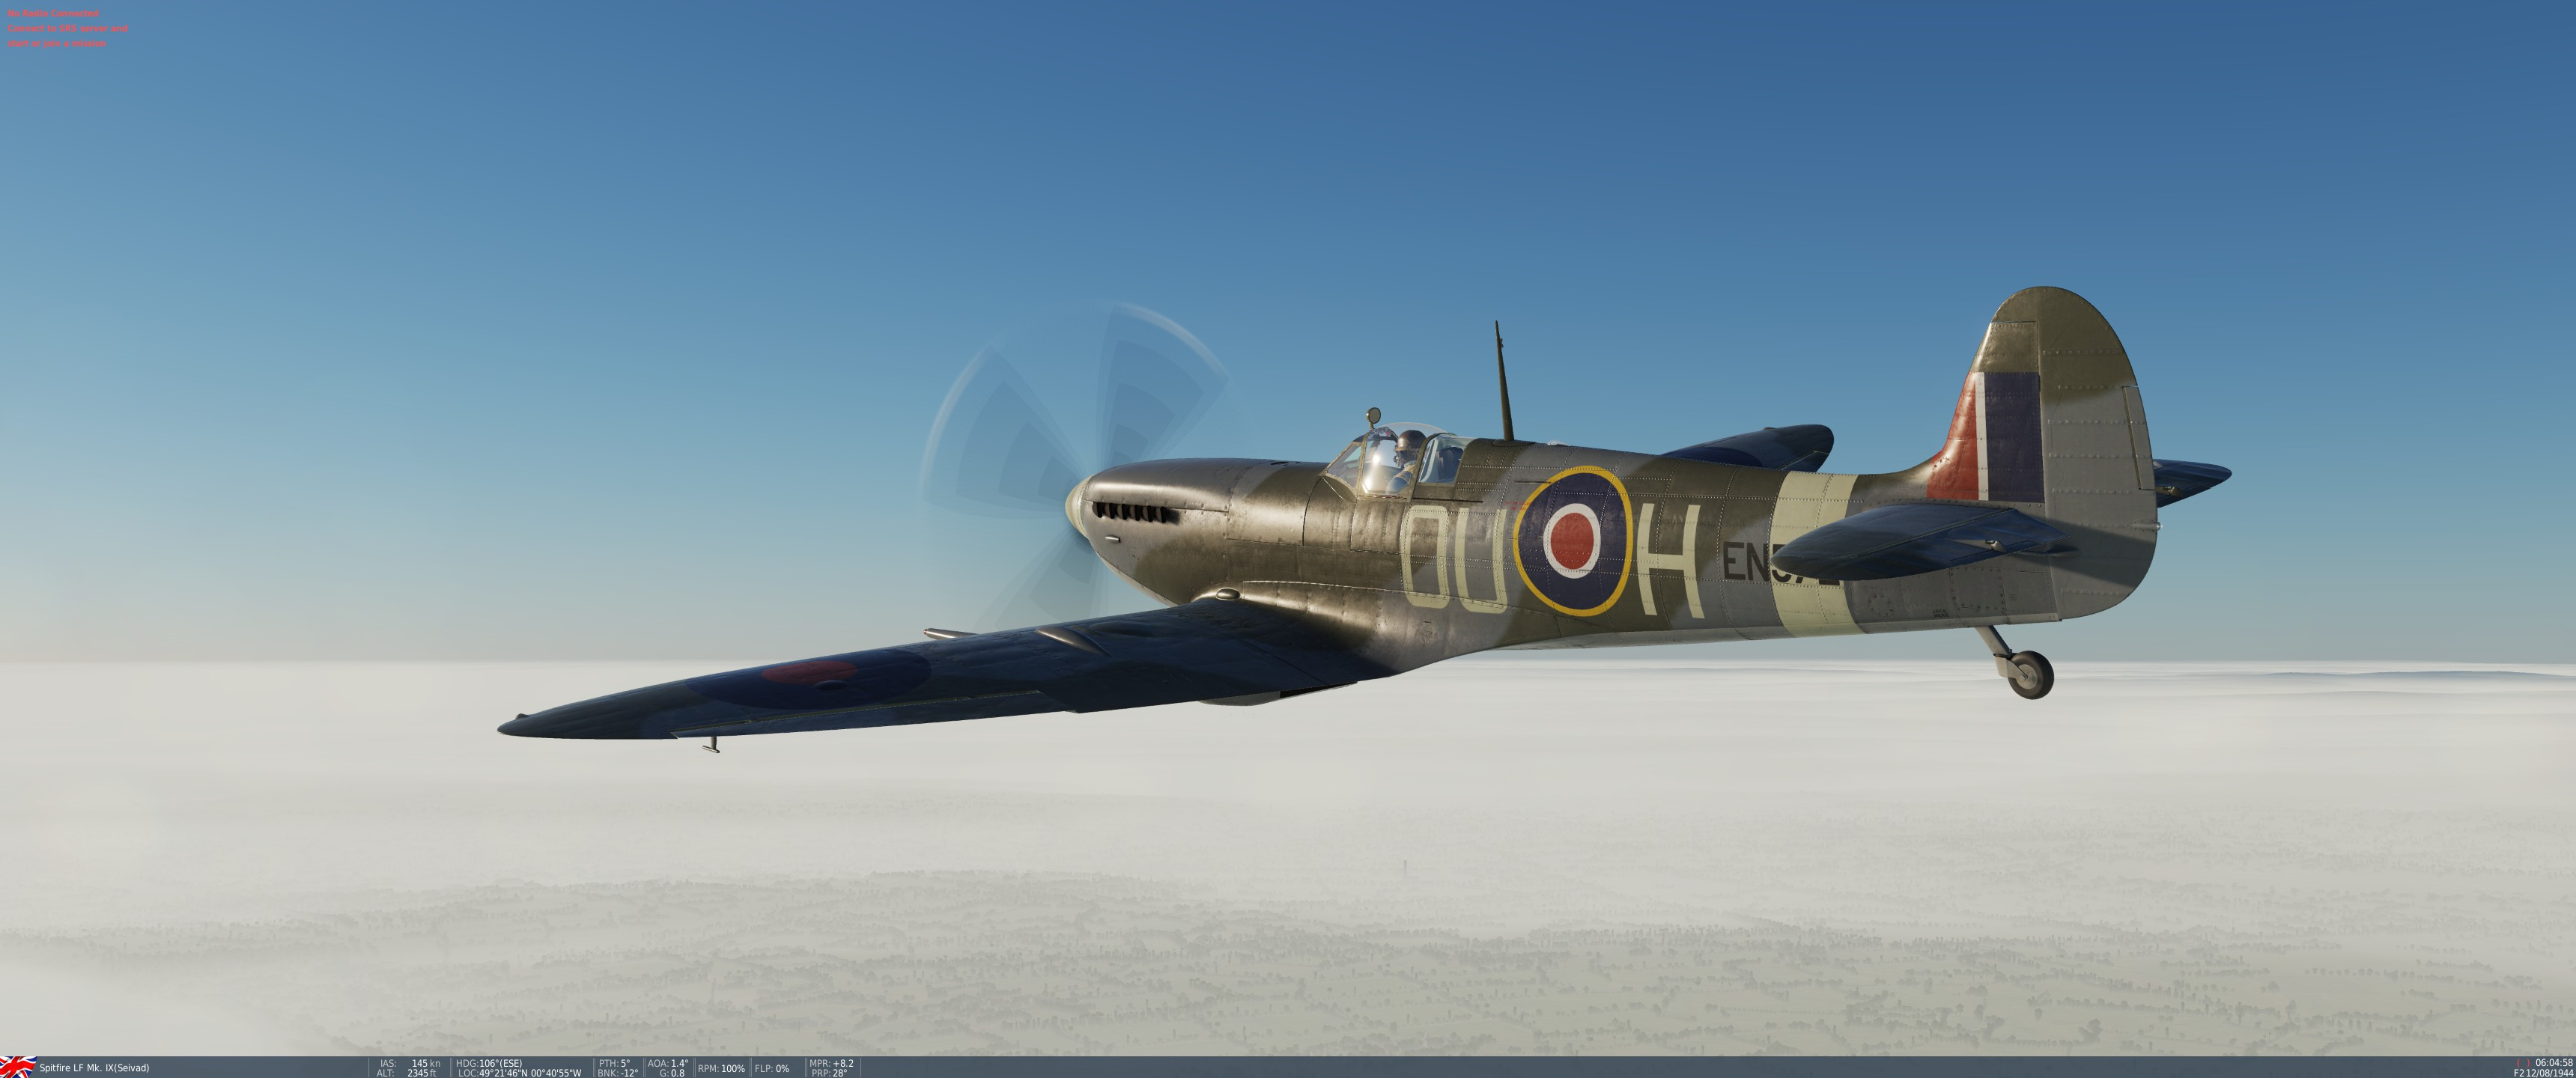 Spitfire Mk.IX, EN572, S/L Johnny Checketts, 485 Squadron (NZ) March 1943